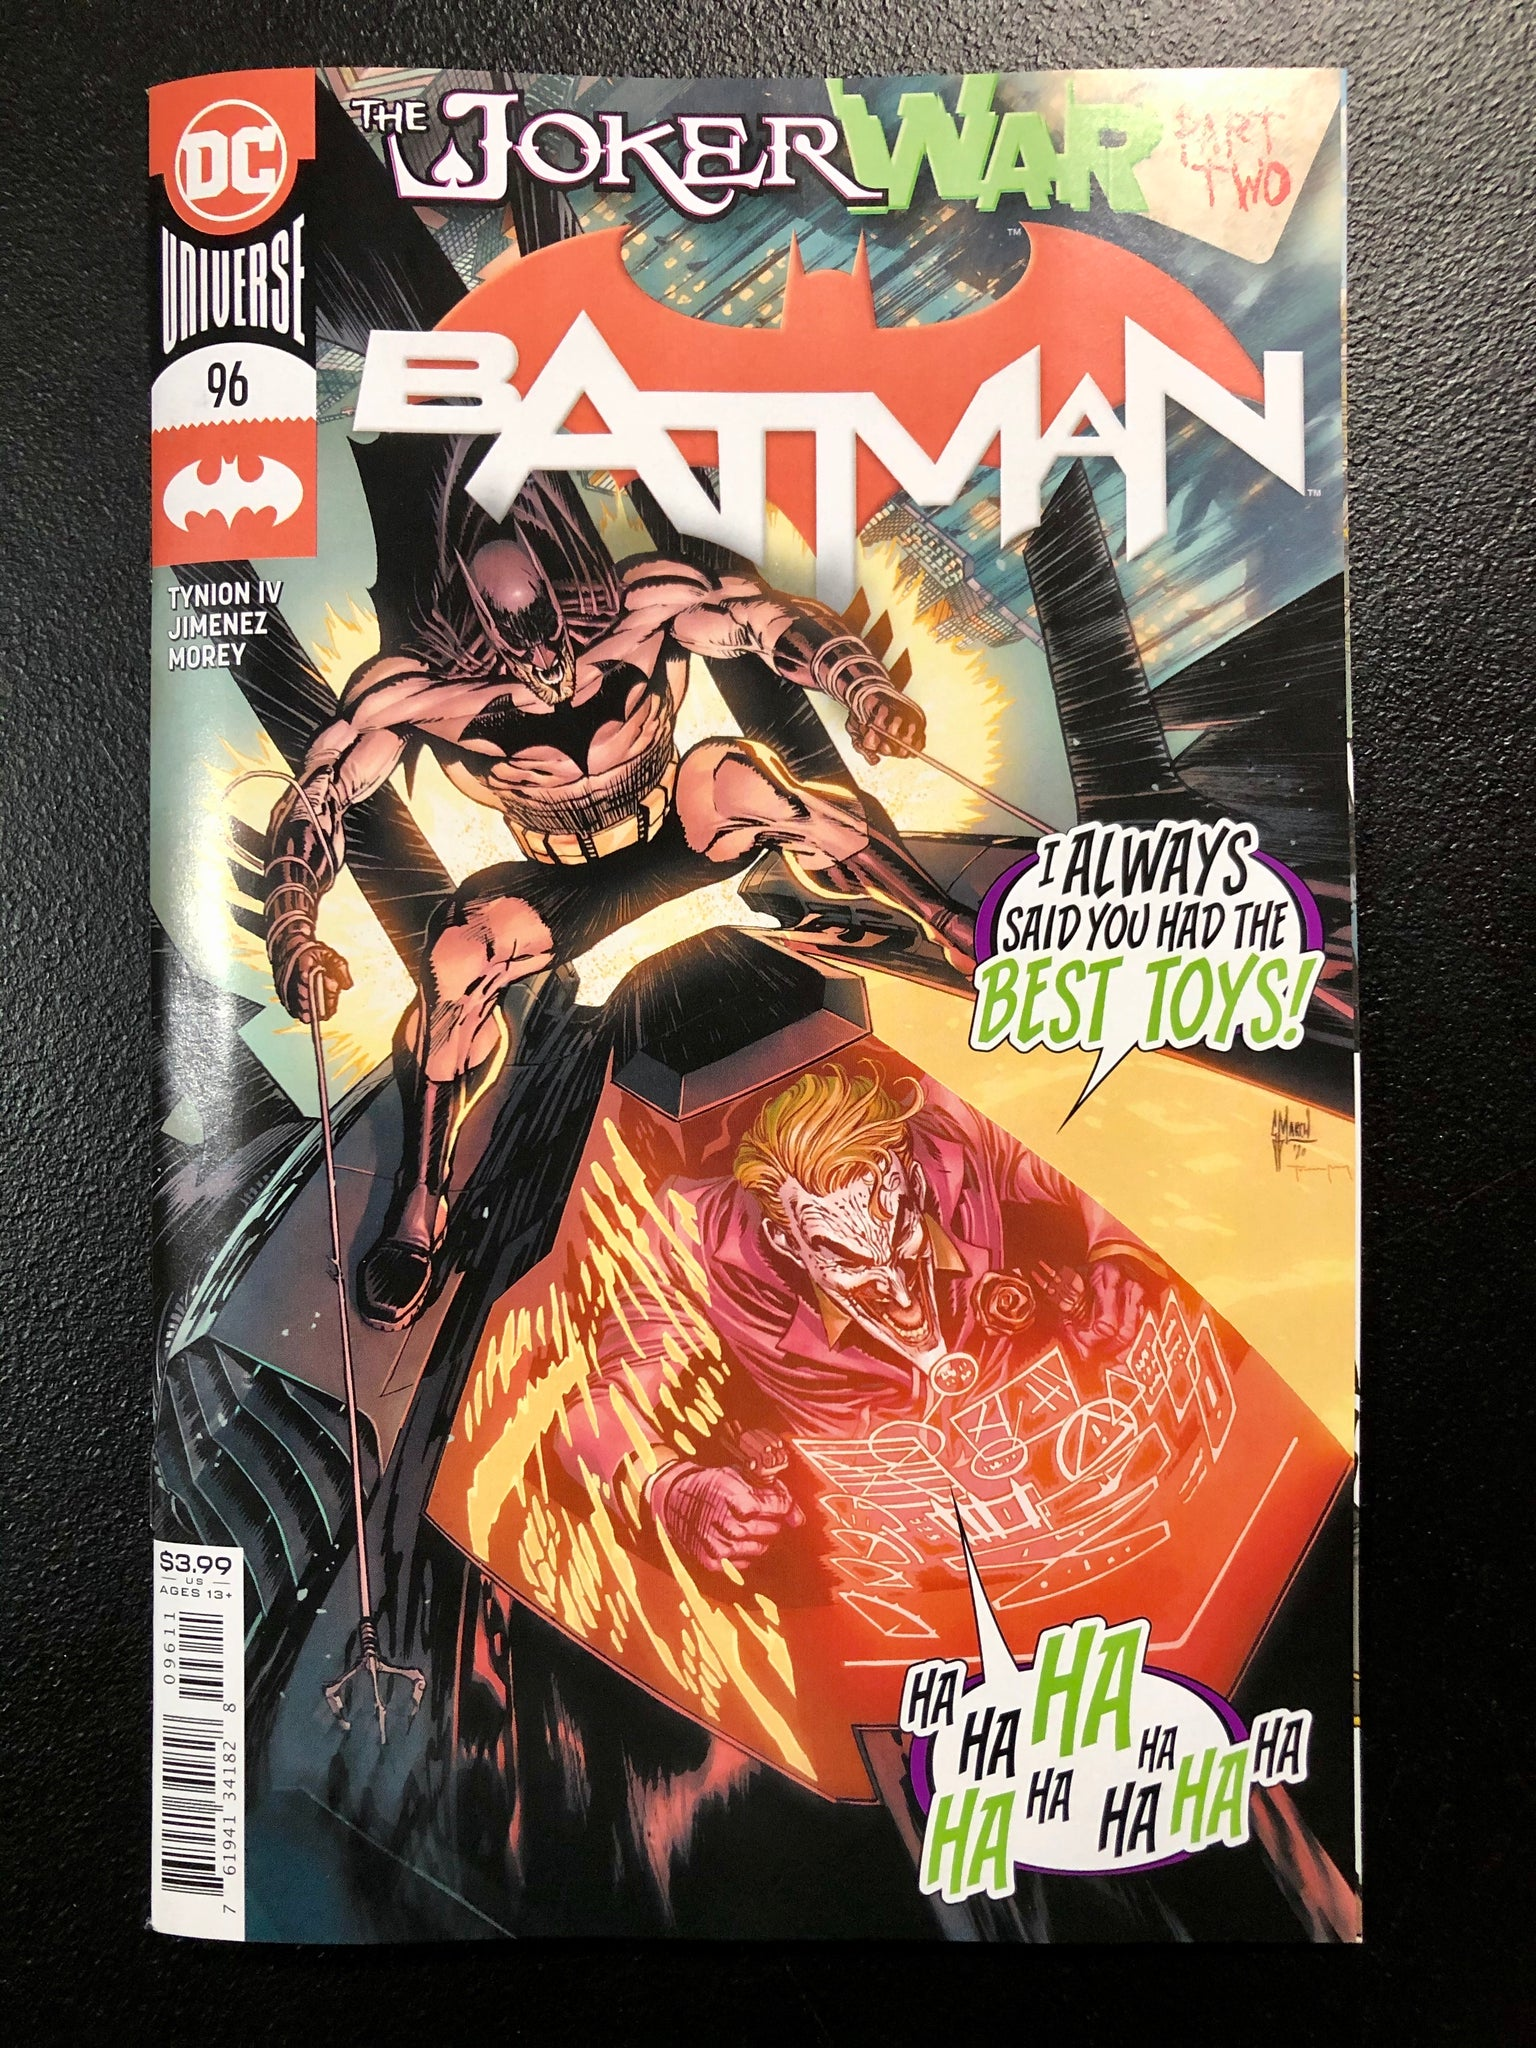 BATMAN #96 Cover A Guillem March JOKER WAR